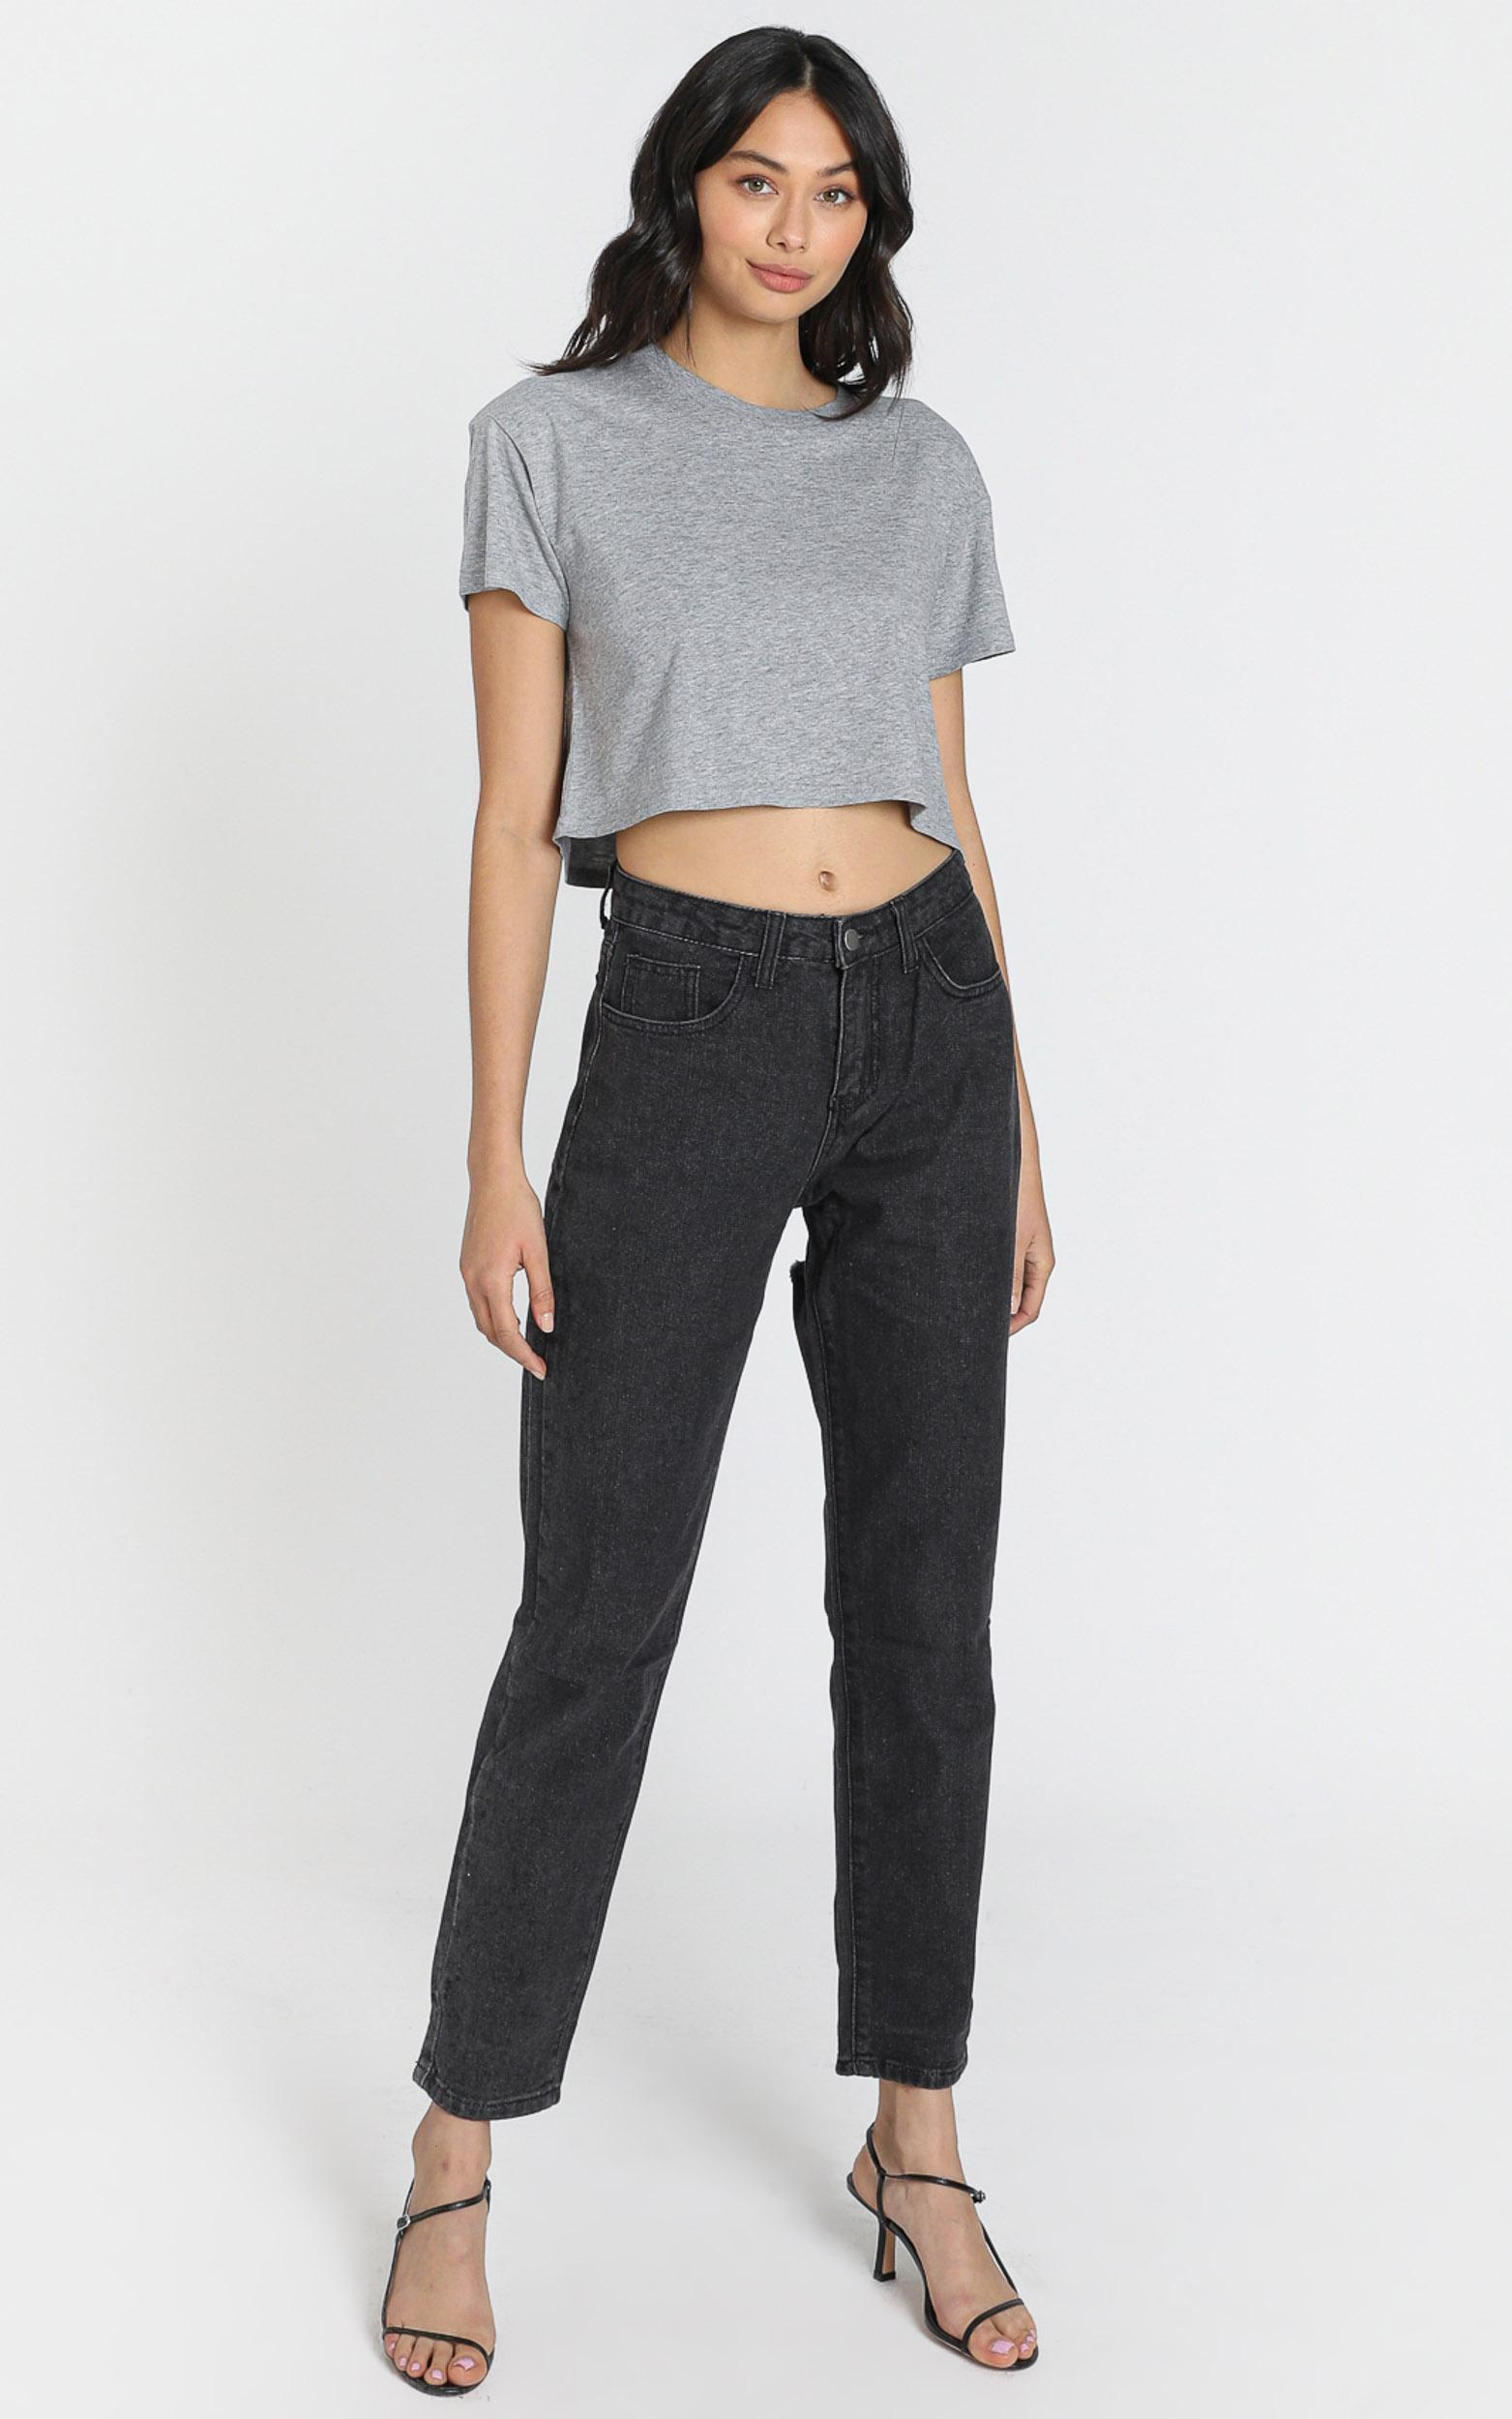 AS Colour - Crop Tee in Grey Marle - 6 (XS), Grey, hi-res image number null